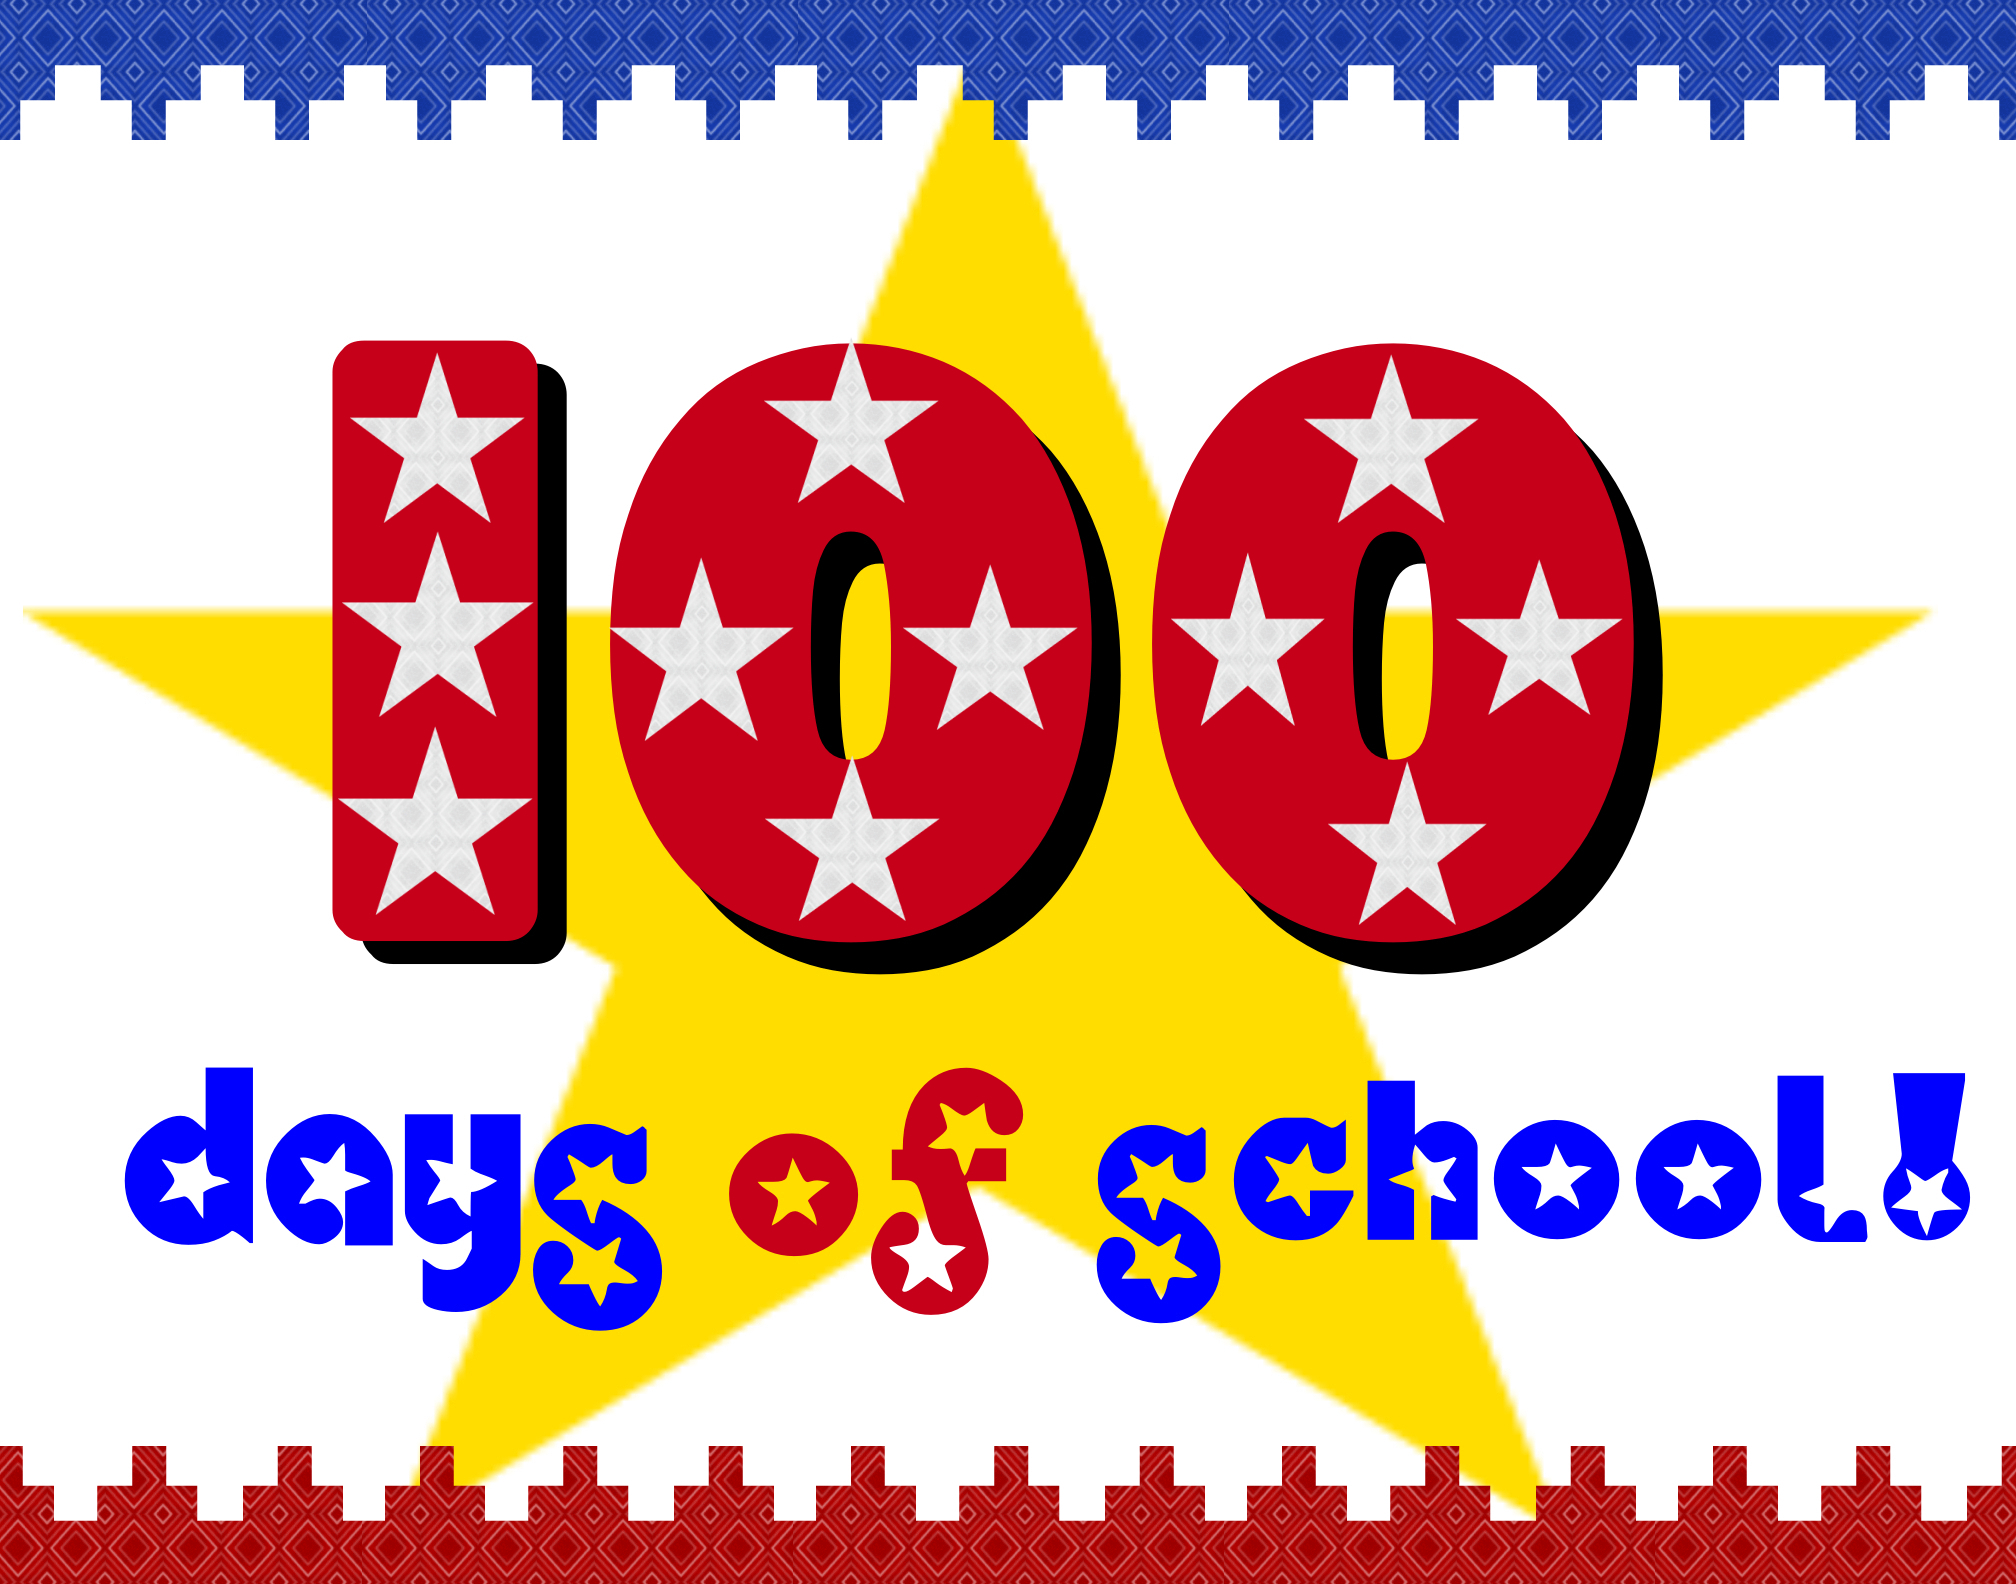 Create A 100 Days Of School Poster